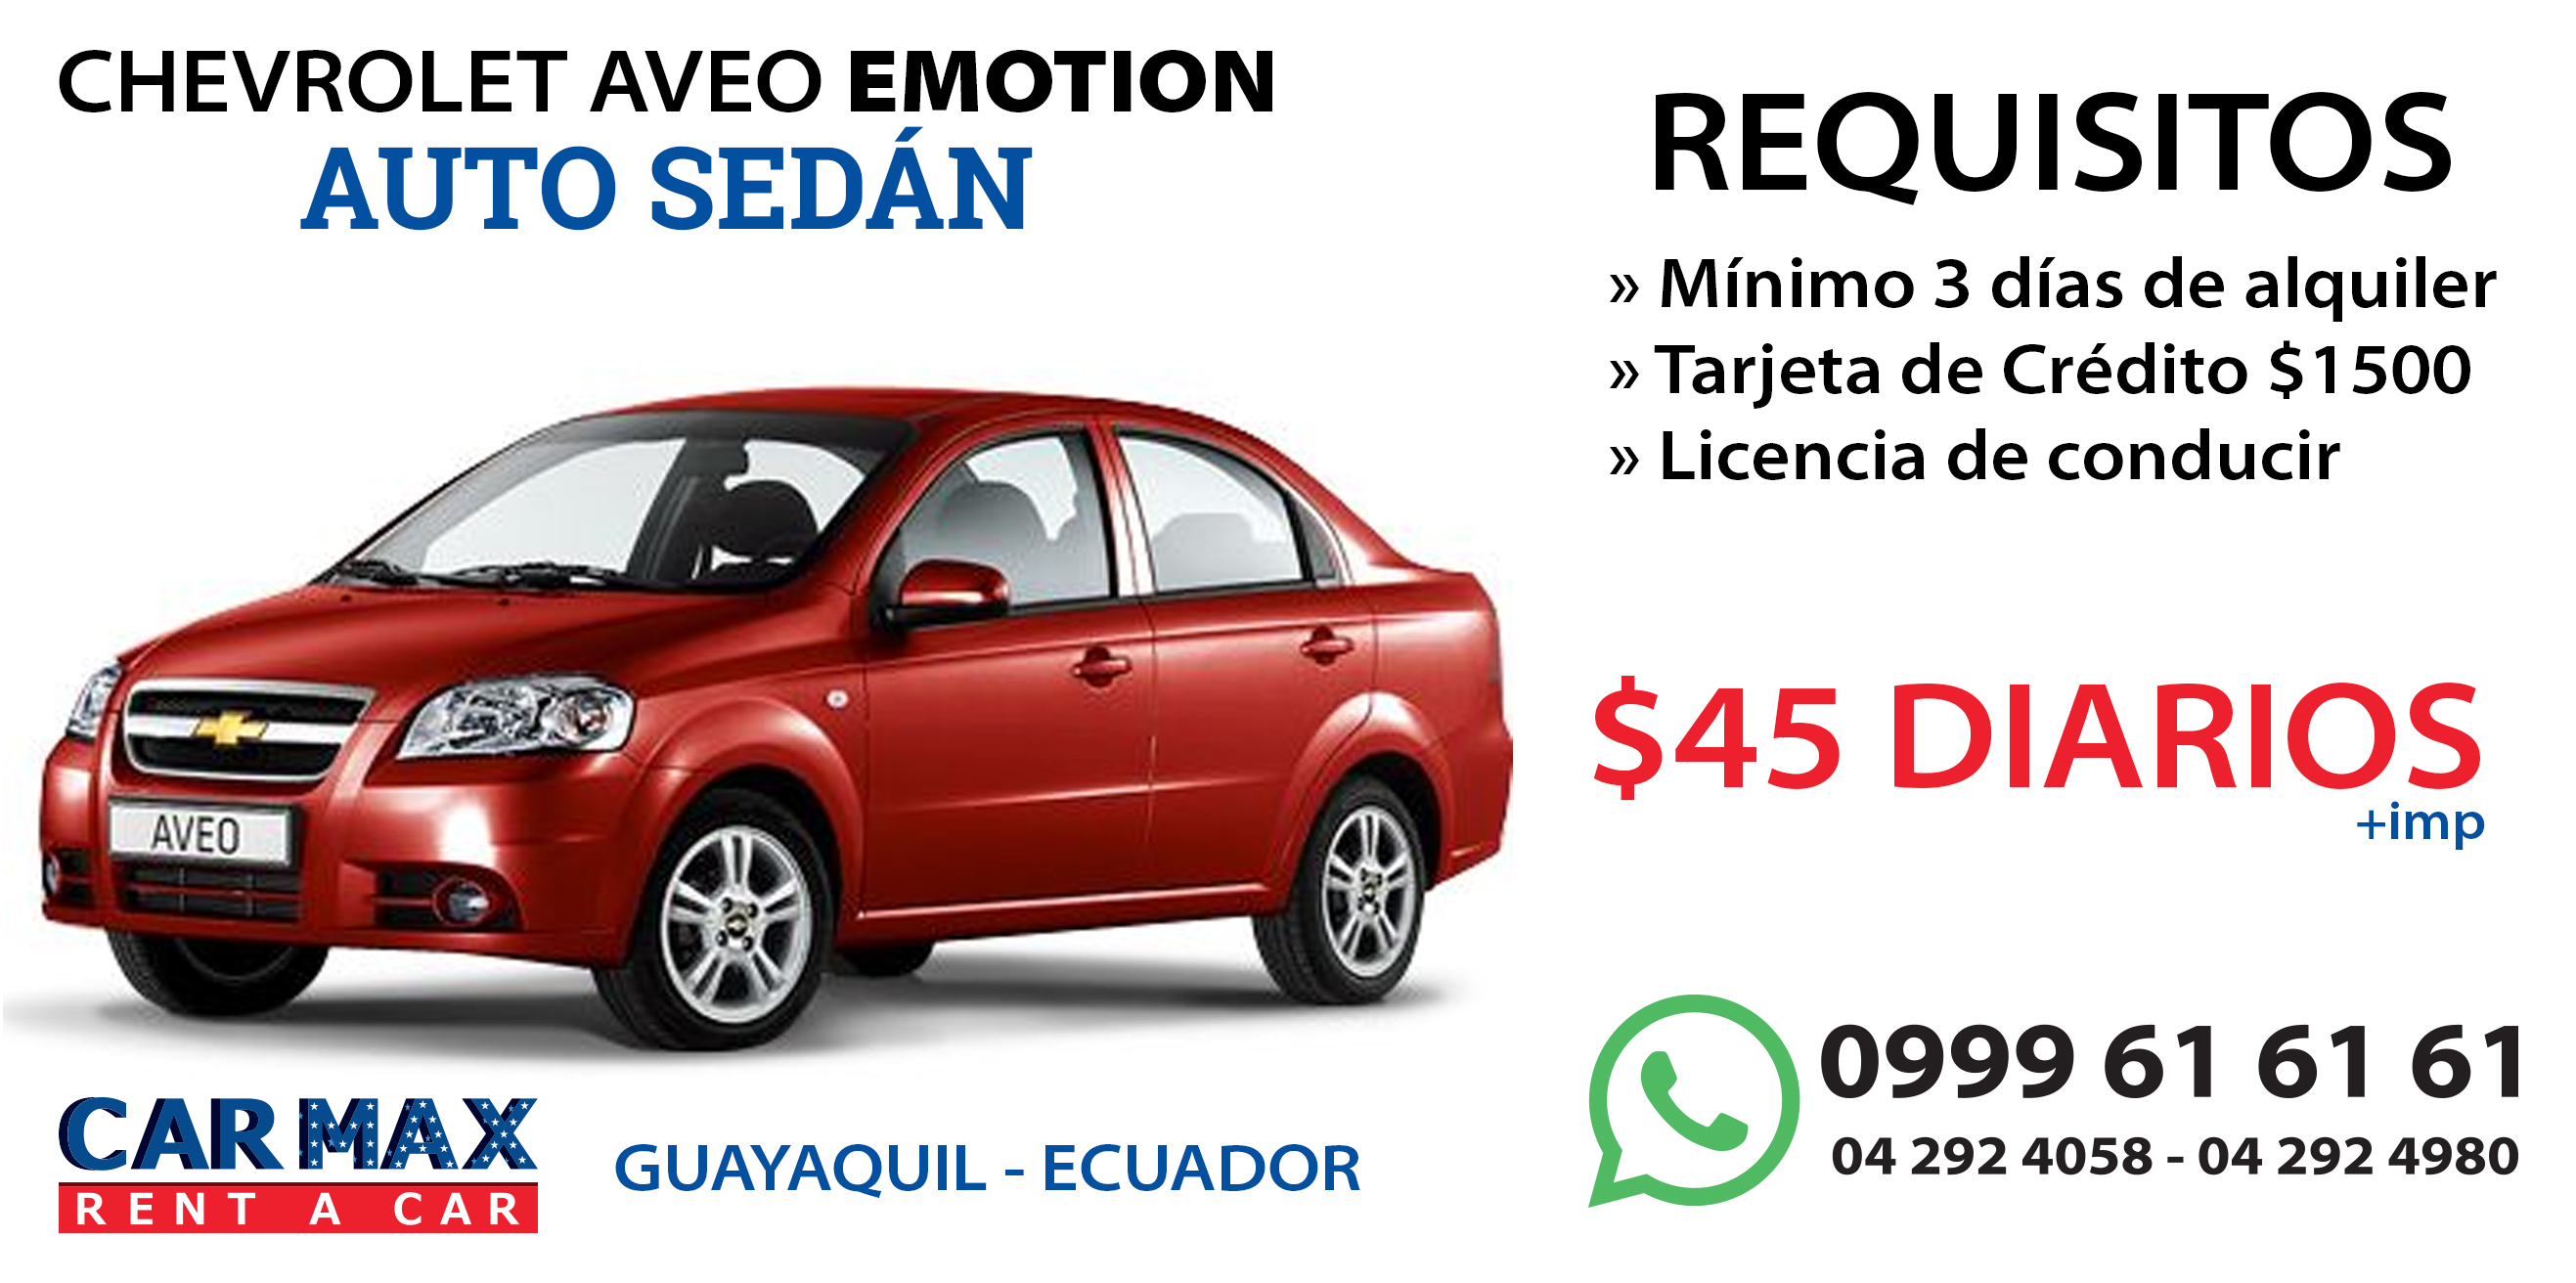 Chevrolet aveo emotion carmax